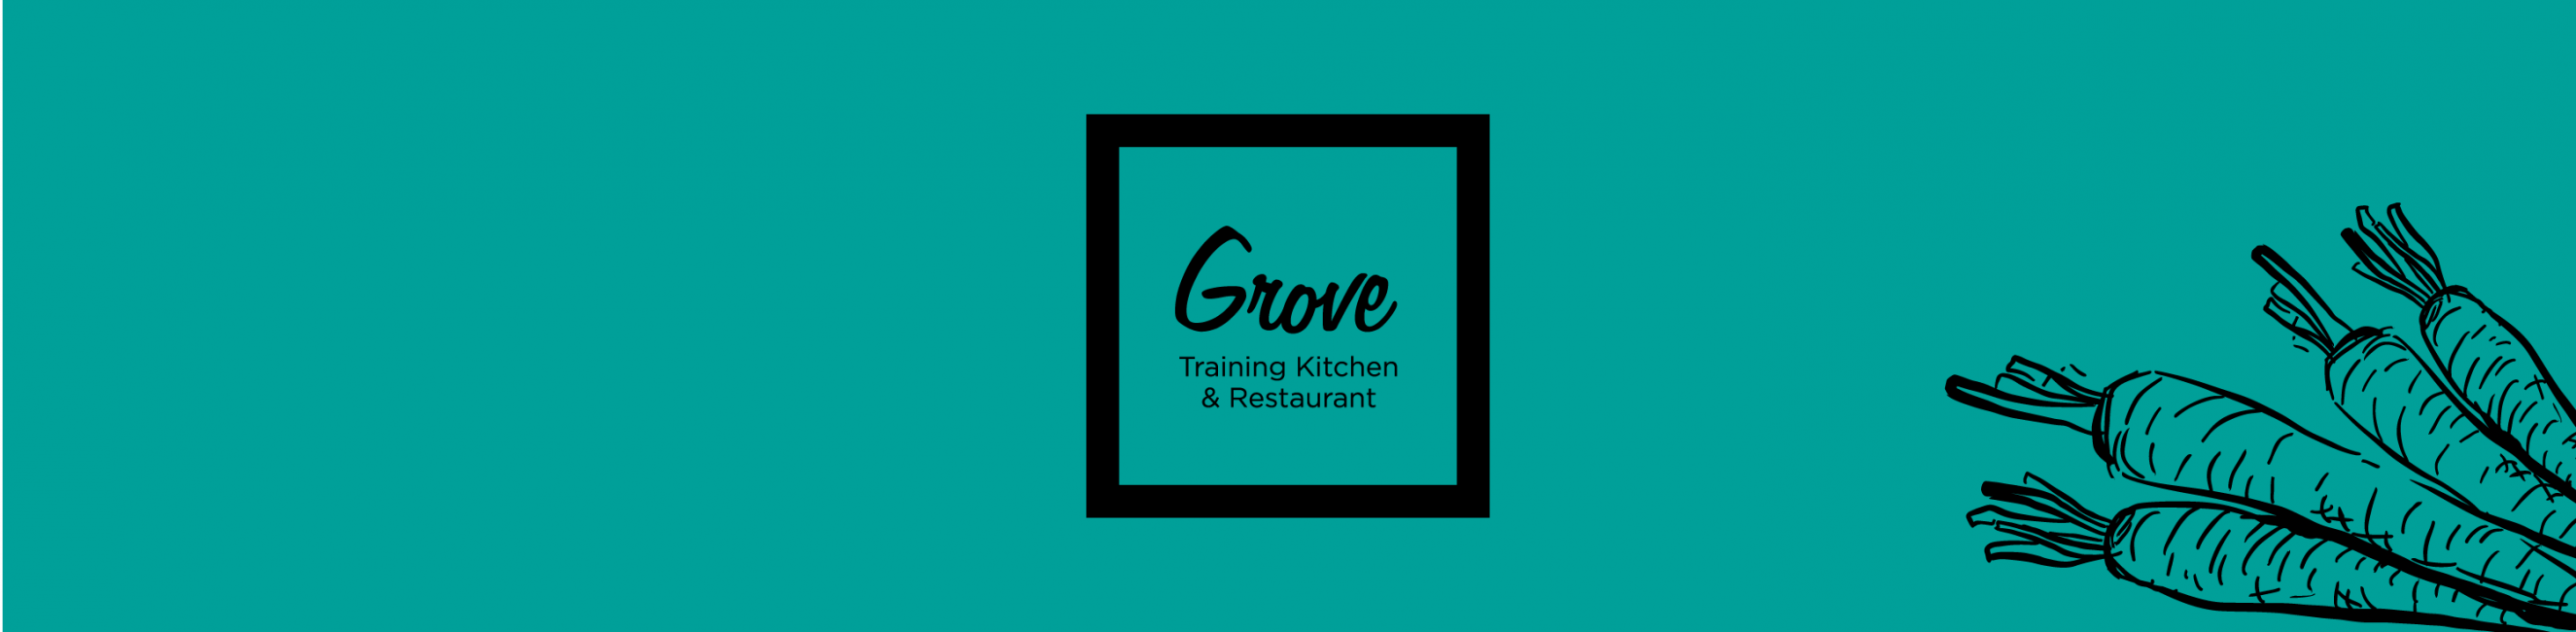 Grove Header logo